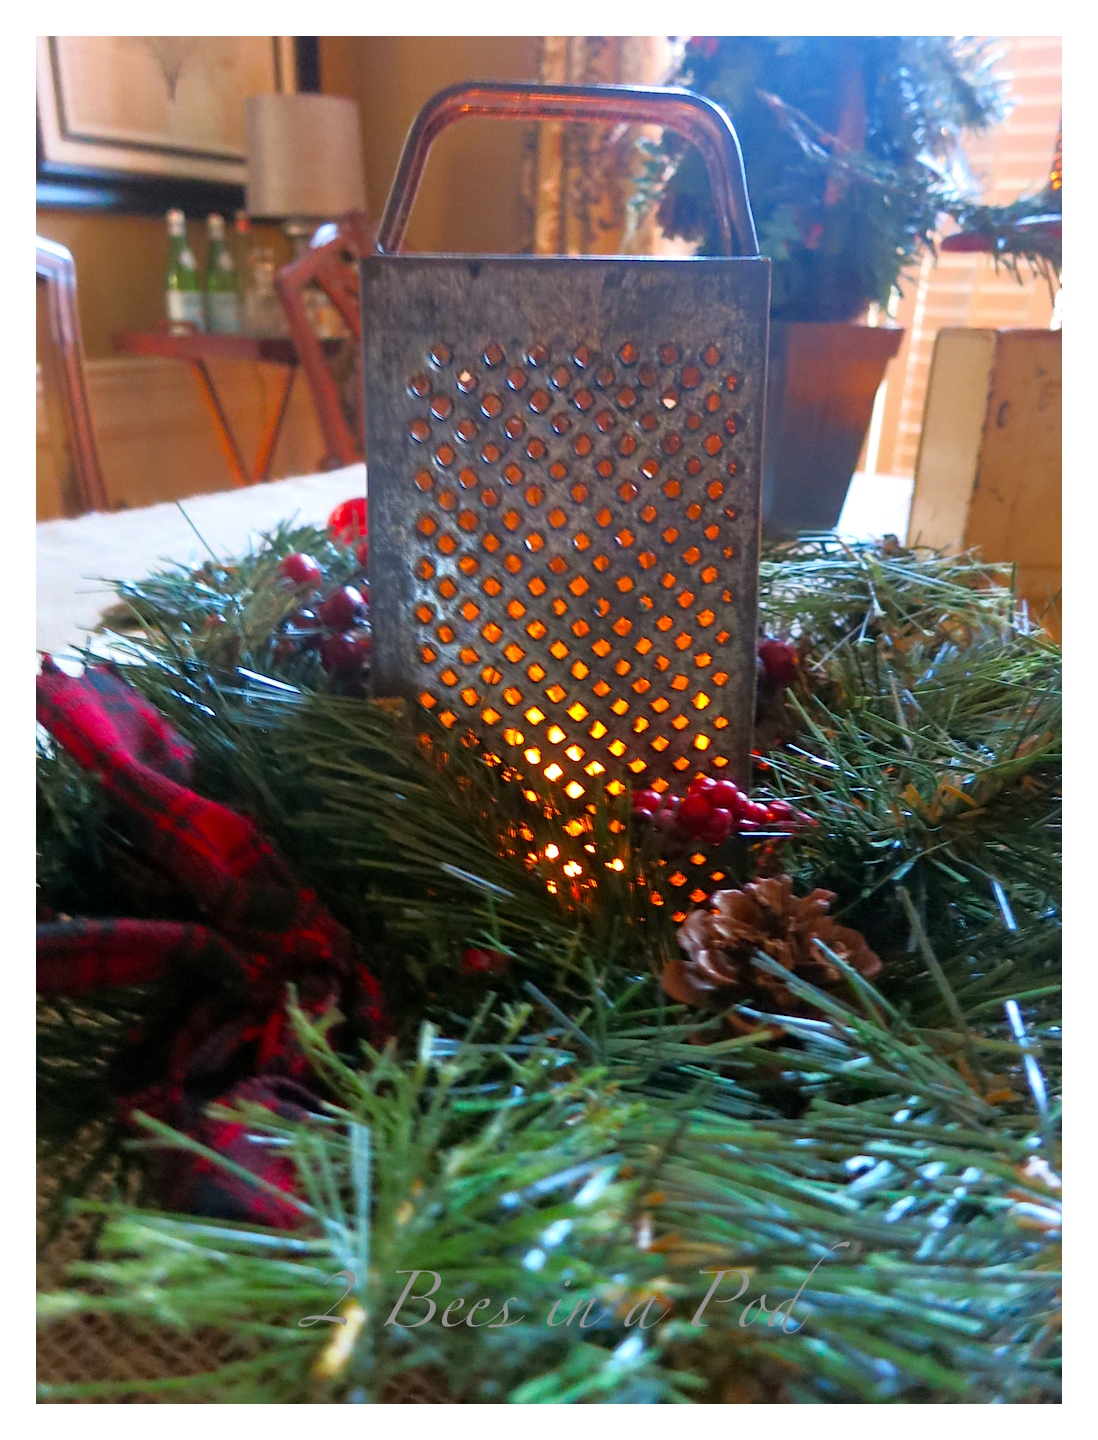 Rustic Christmas - I love the crusty, rusty, chippy and warmth that rustic elements bring to my home for Christmas! I really like the vintage grater and wreath as a tea light centerpiece.